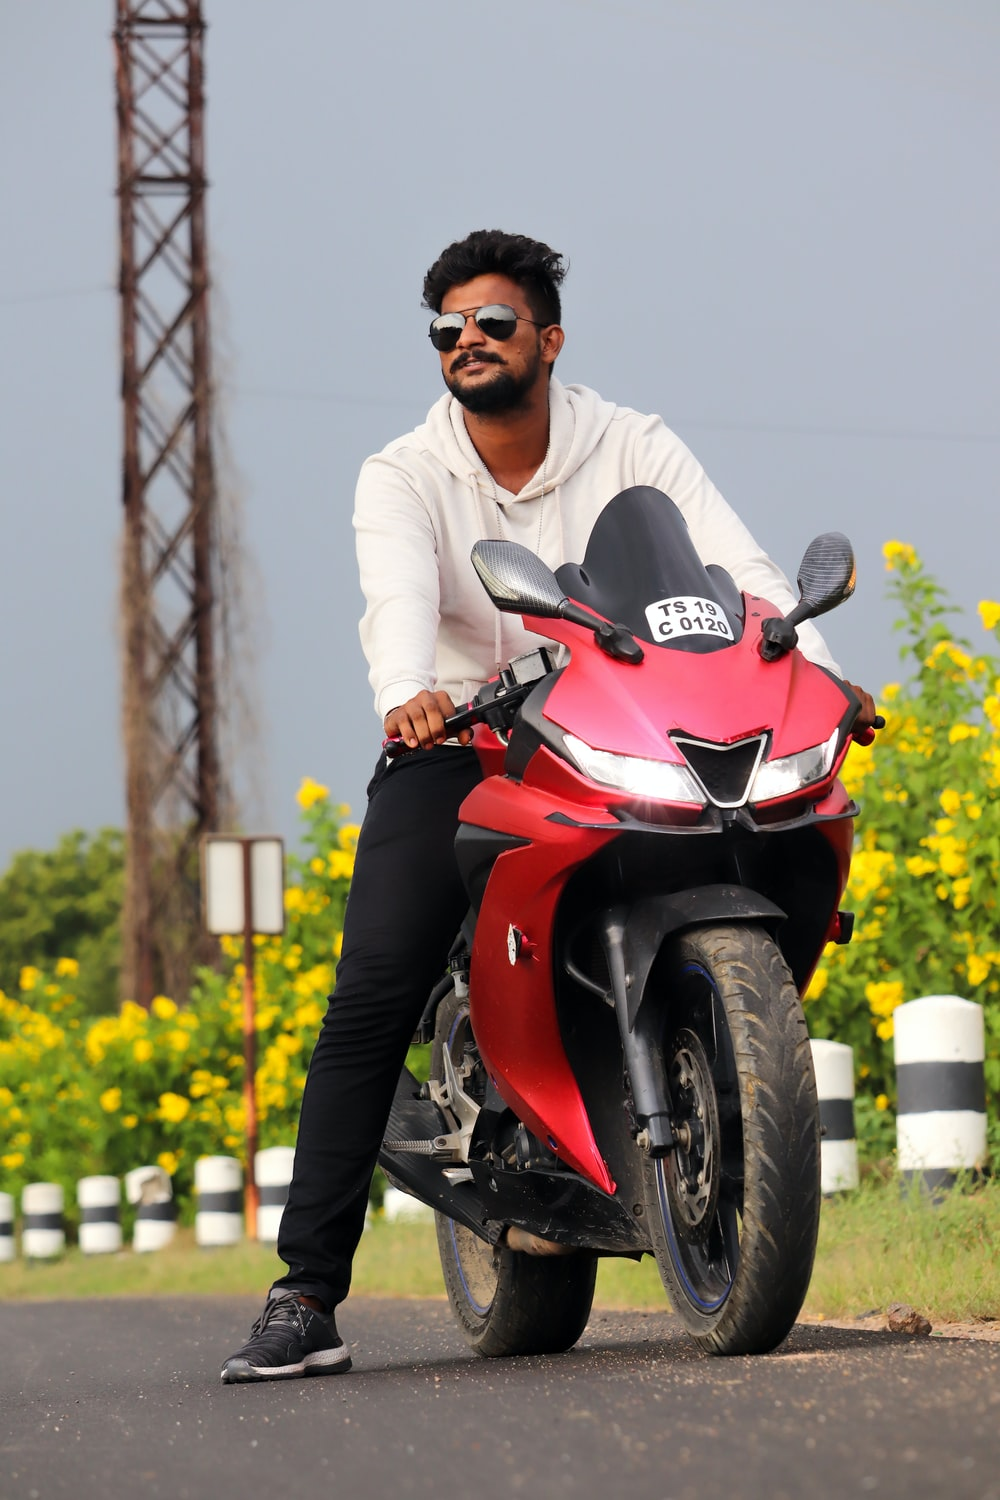 man in white dress shirt riding red and black motorcycle